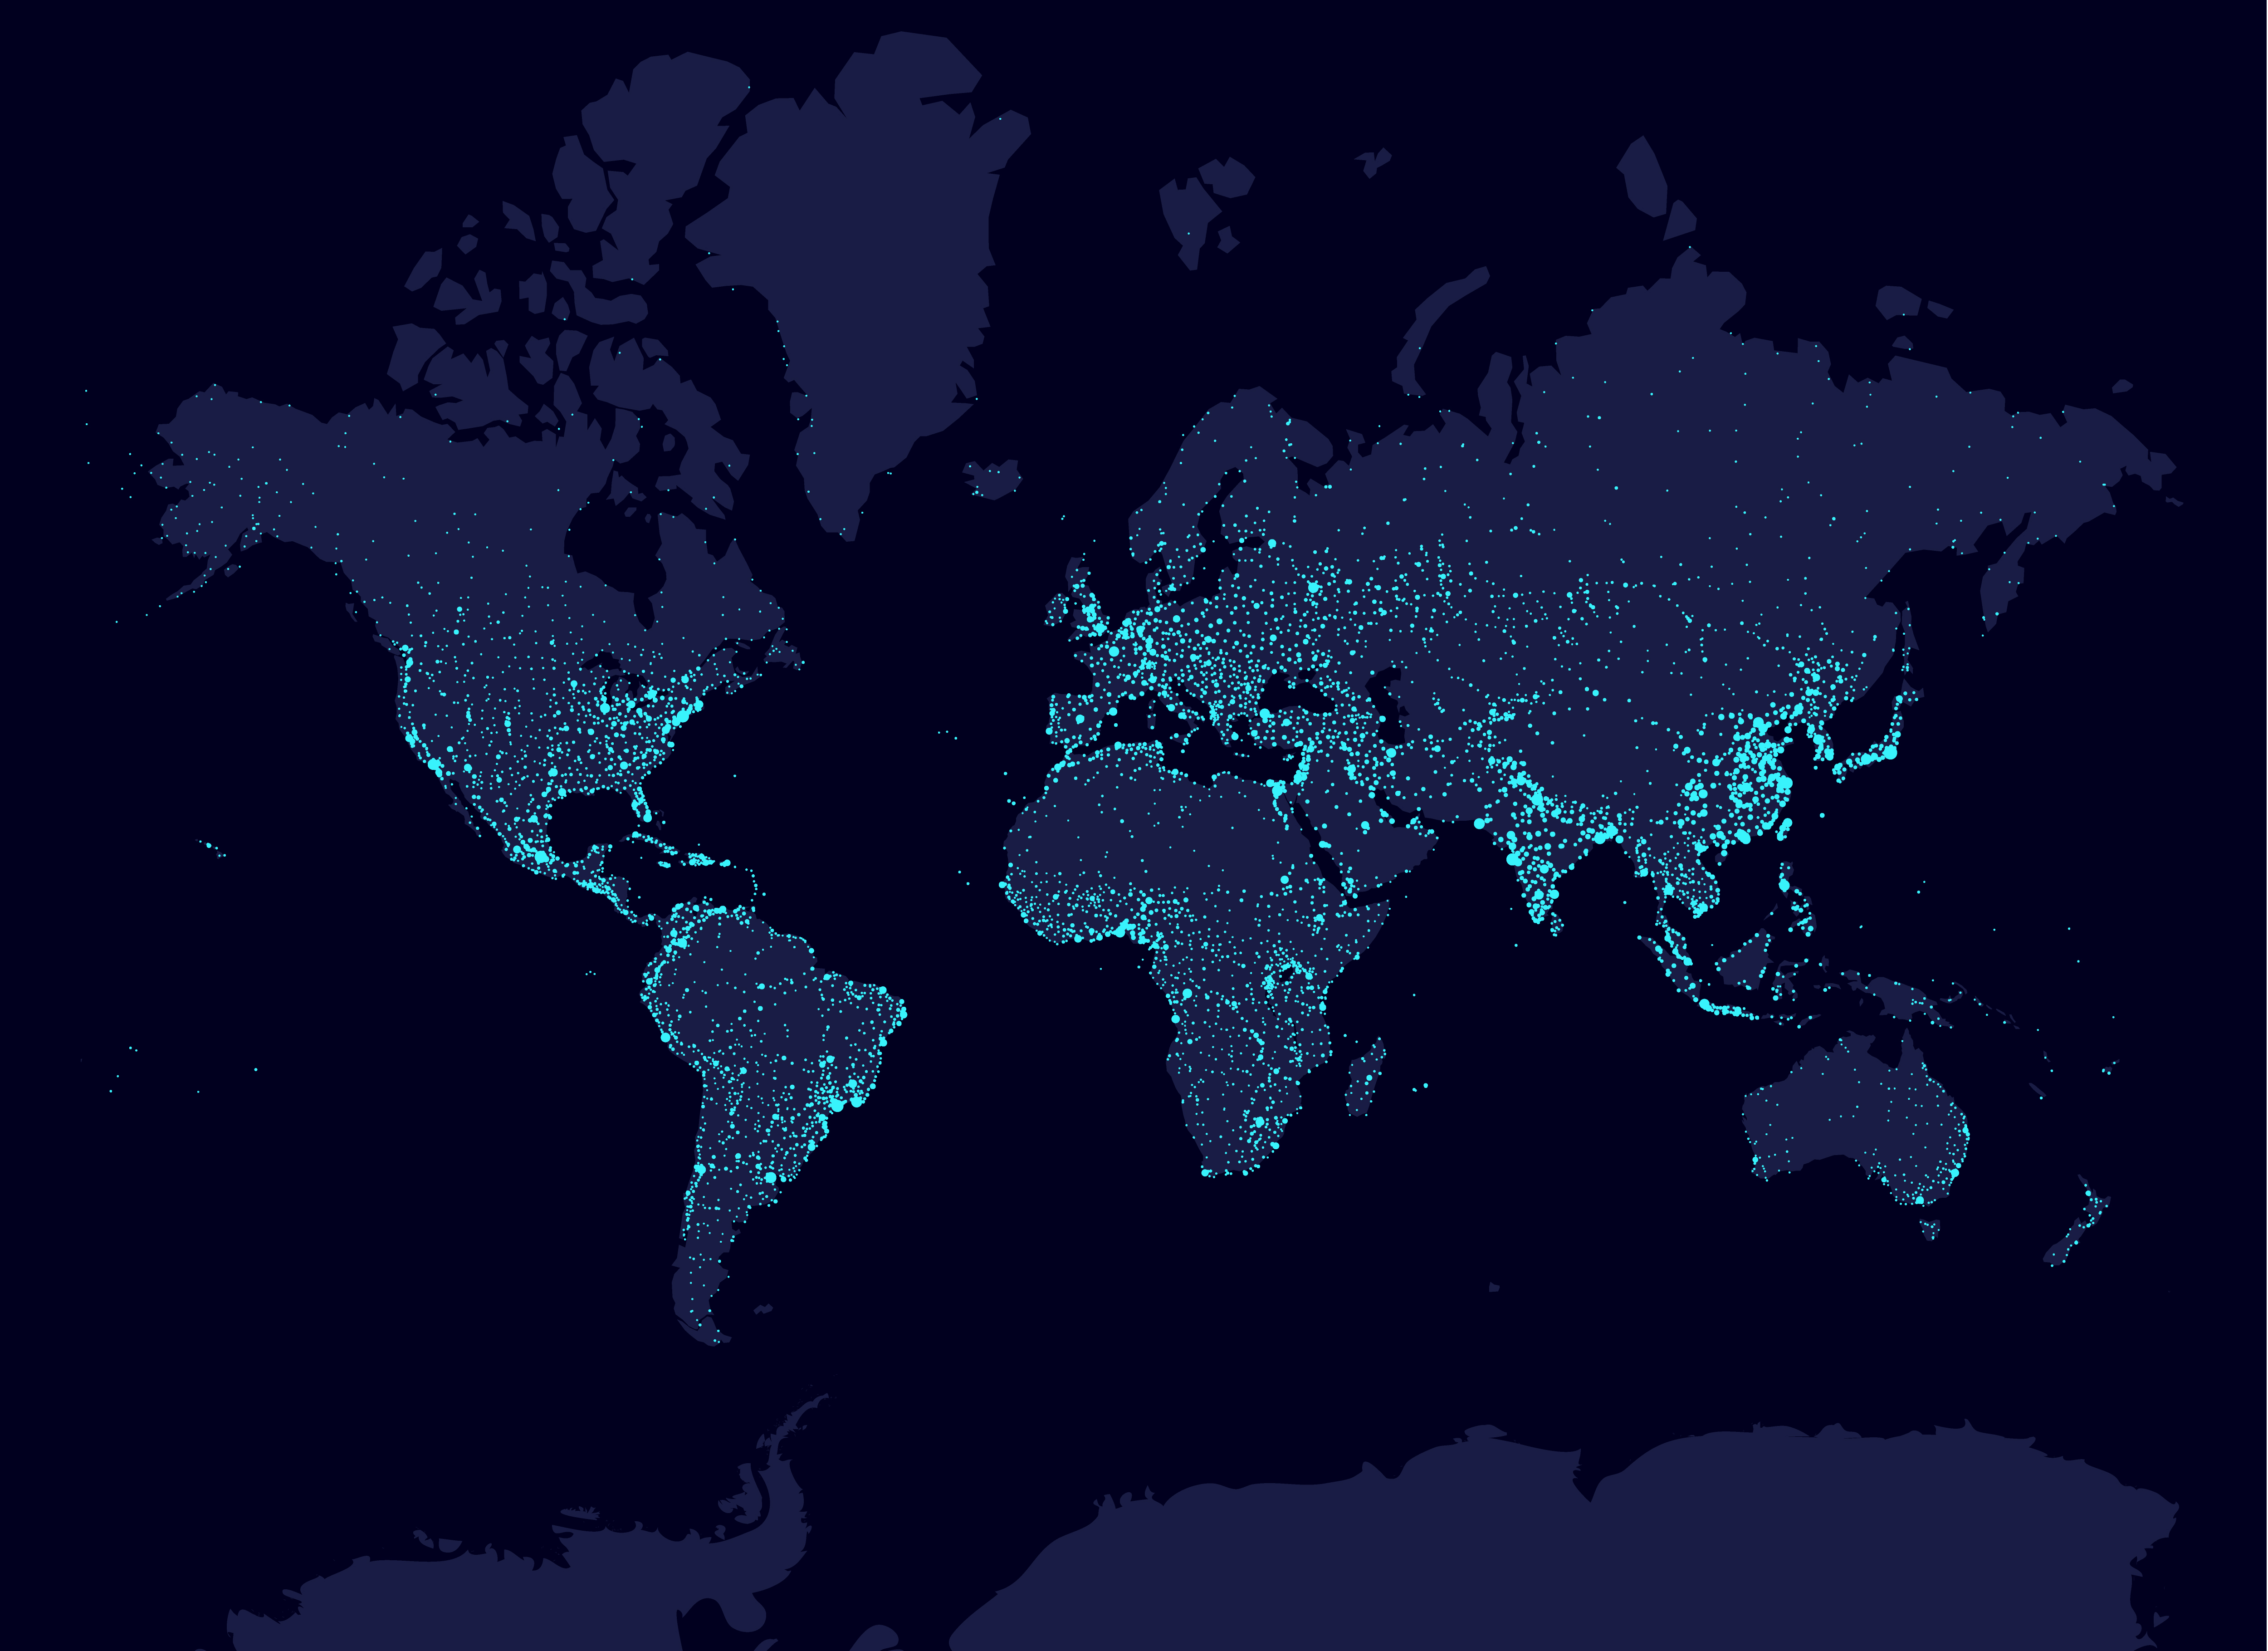 world map with lights showing population